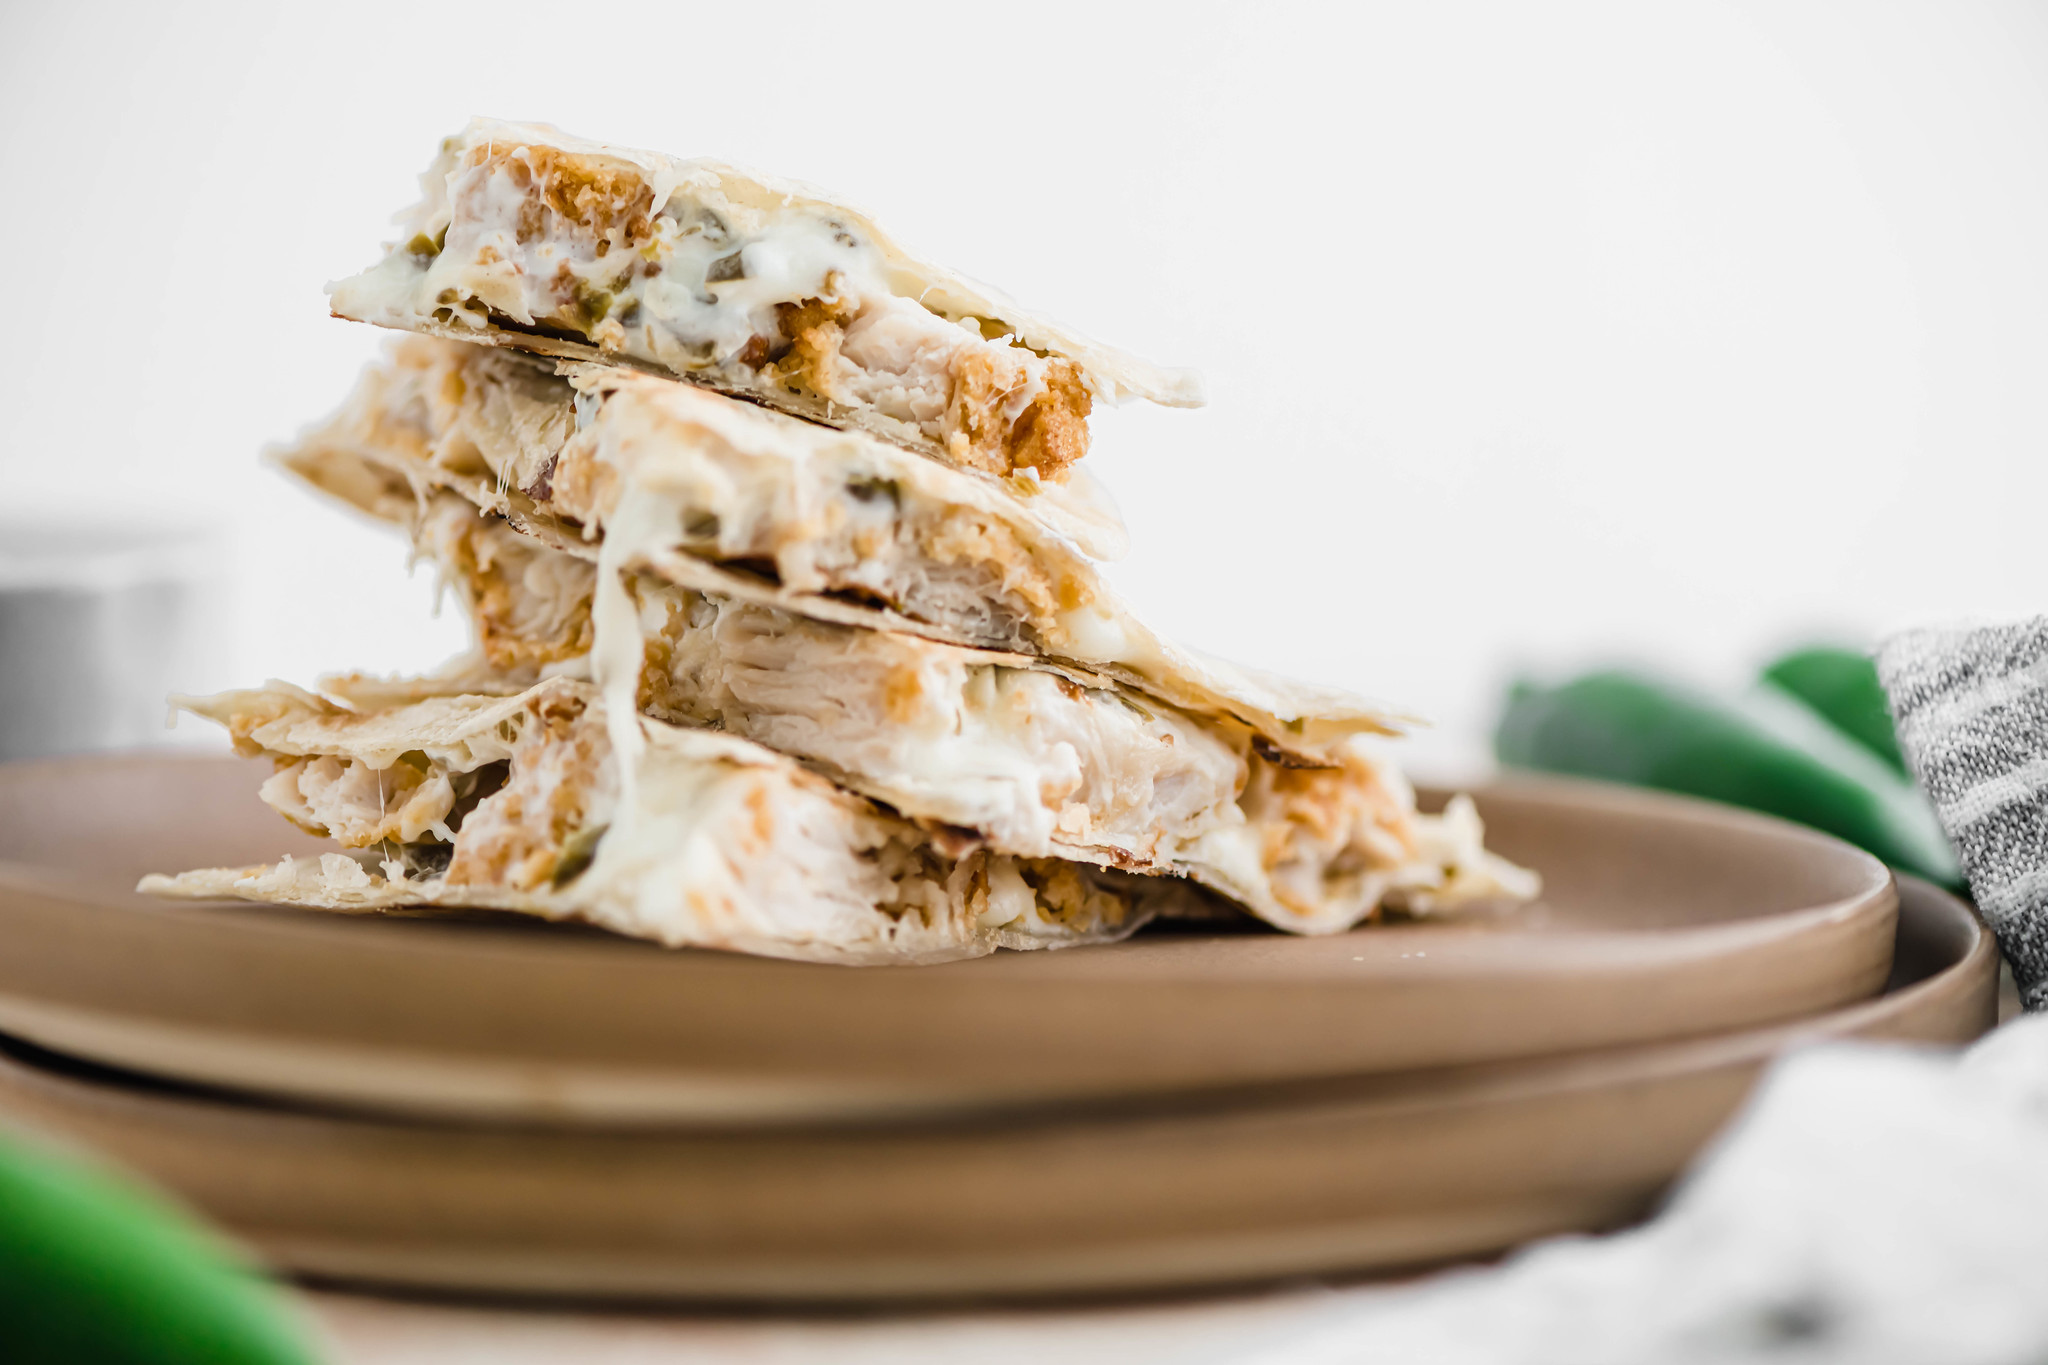 One jalapeno popper quesadilla cut into triangles and stack on top of two clay colored plates.